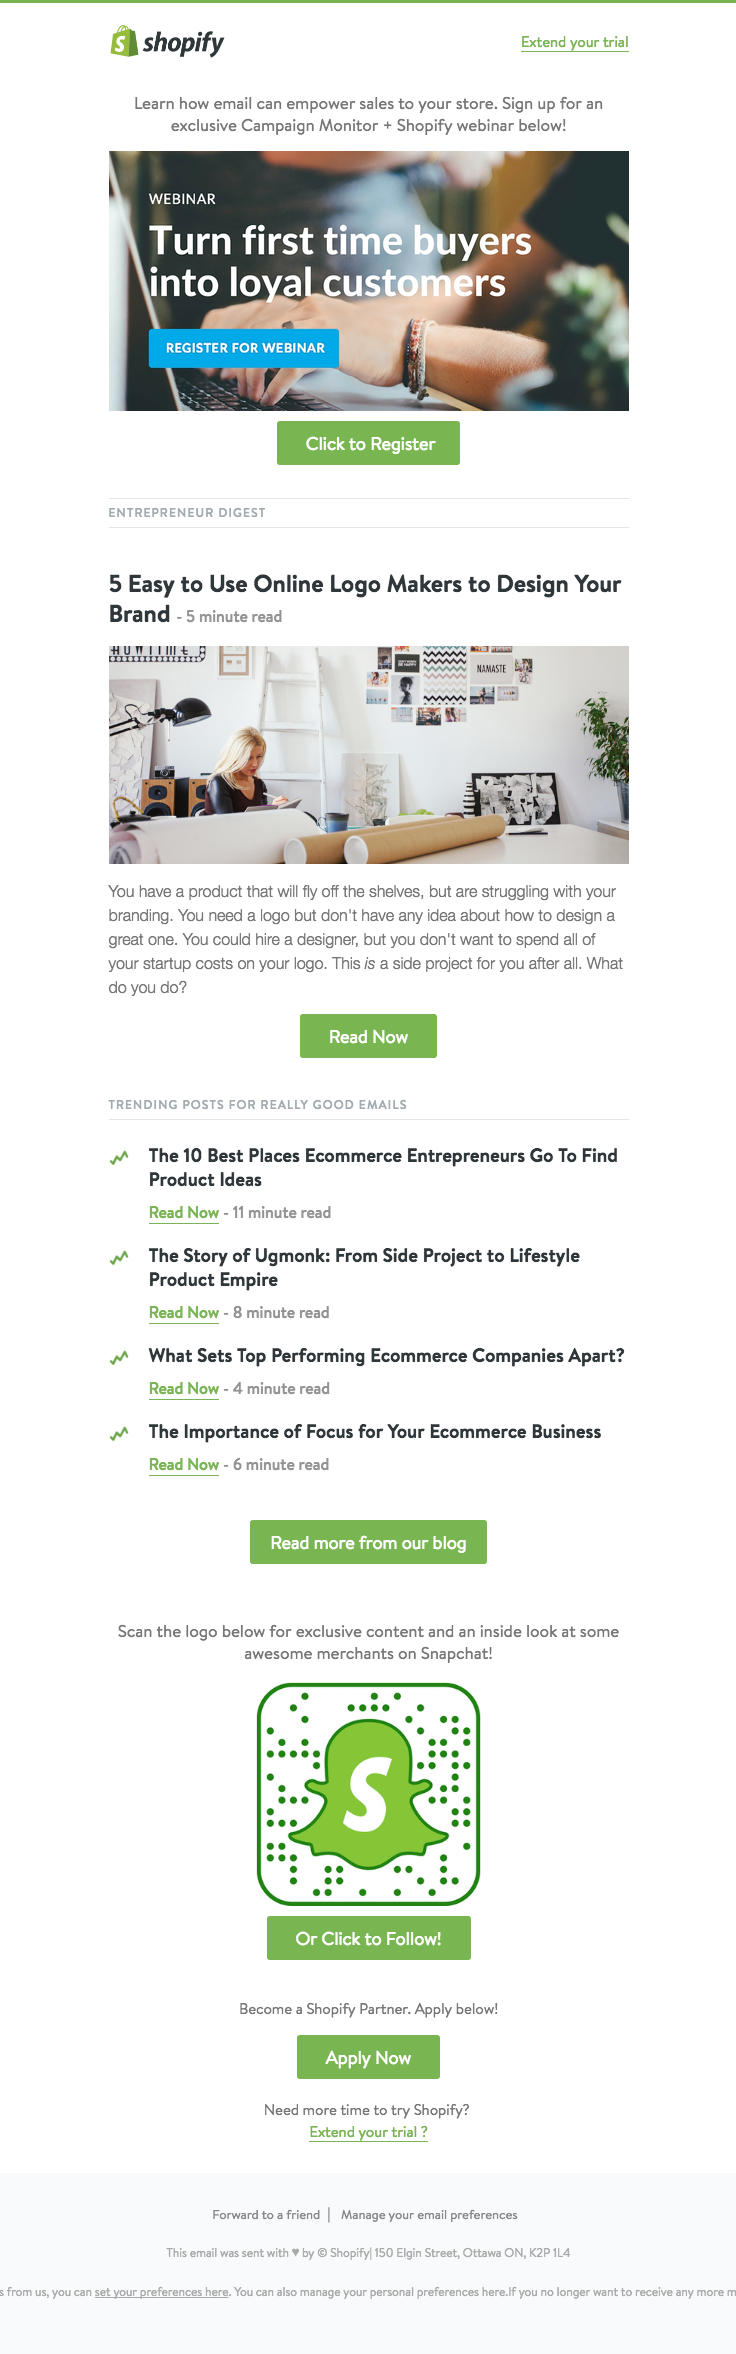 shopify sent this email with the subject line 5 easy to use online